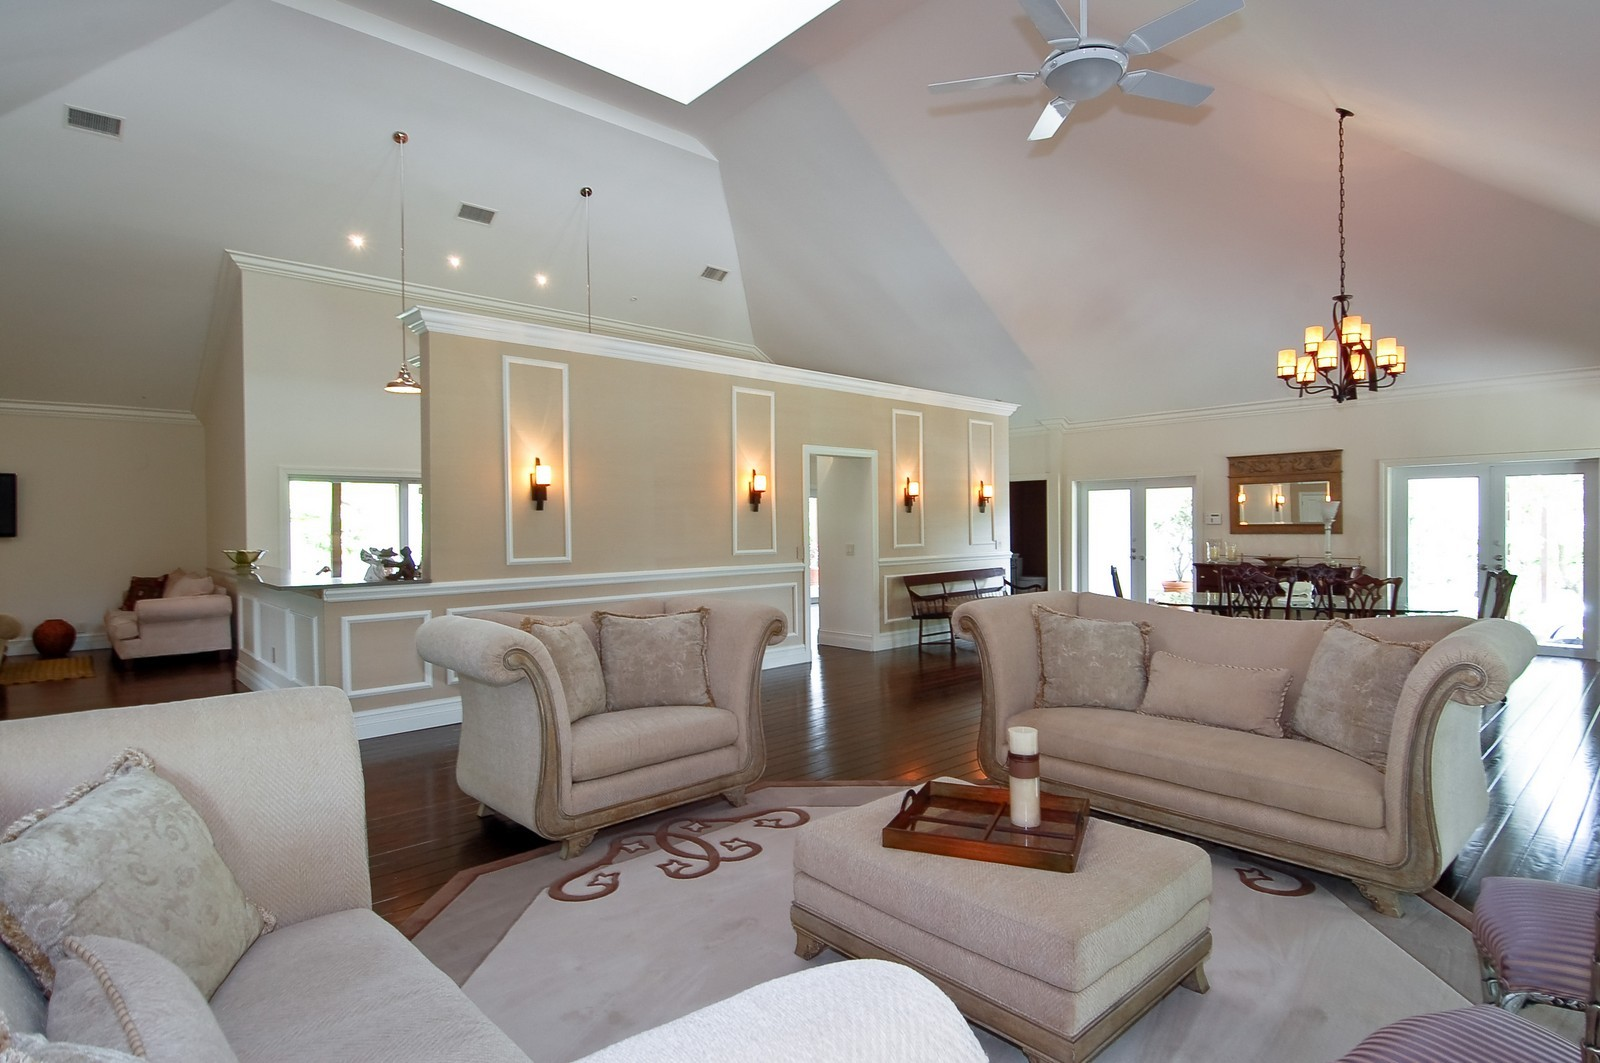 Real Estate Photography - 12800 SW 33RD DRIVE, DAVIE, FL, 33330 - Living Room